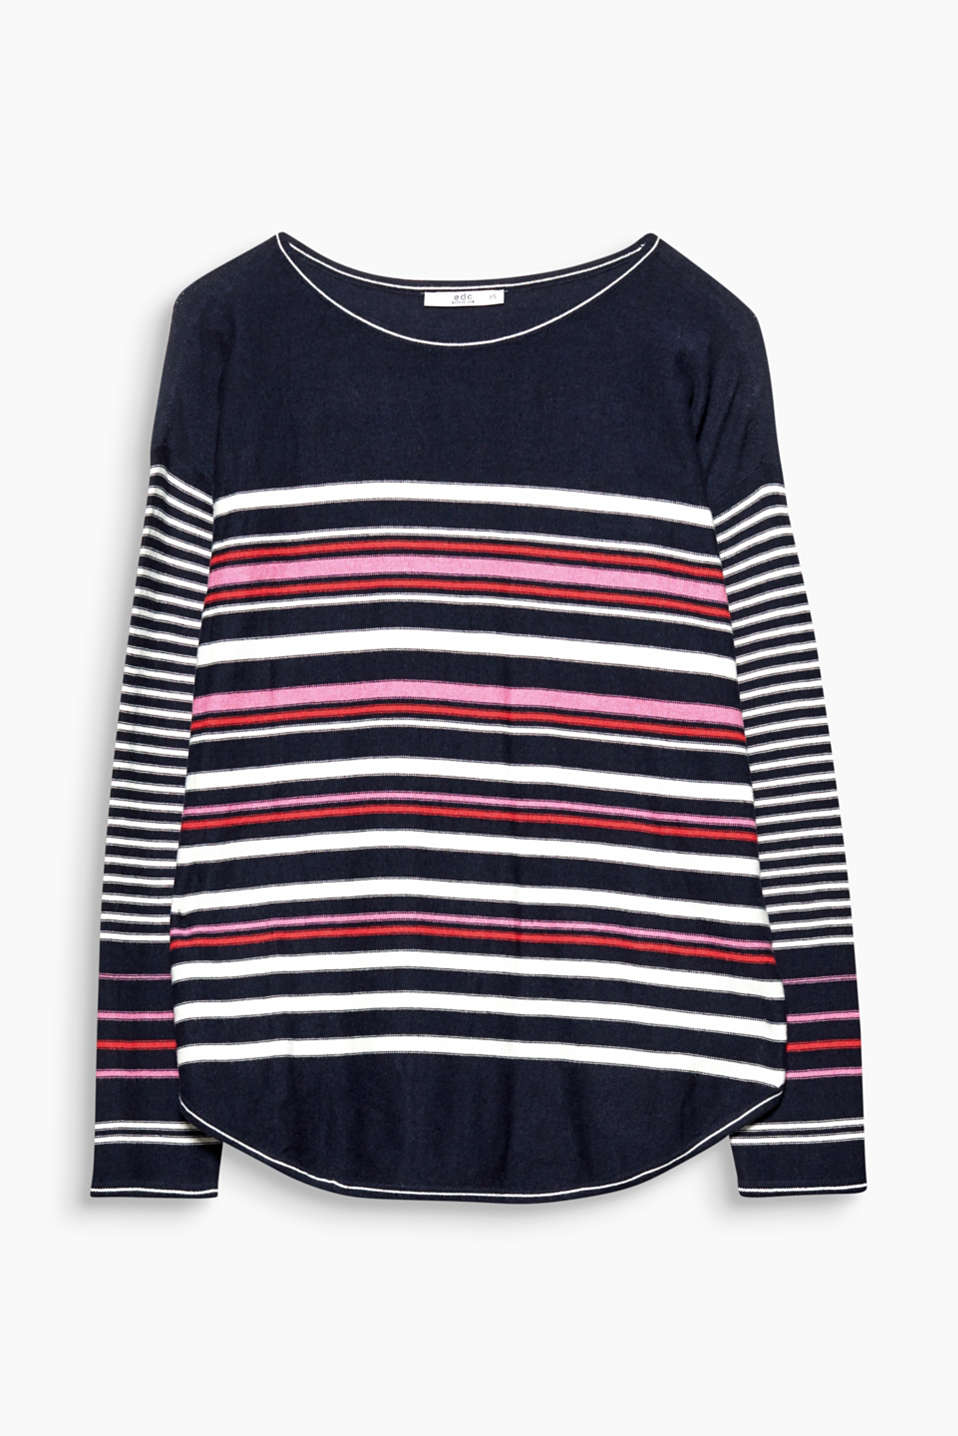 A feel-good jumper: this lightweight jumper combines different striped patterns with a casual silhouette!